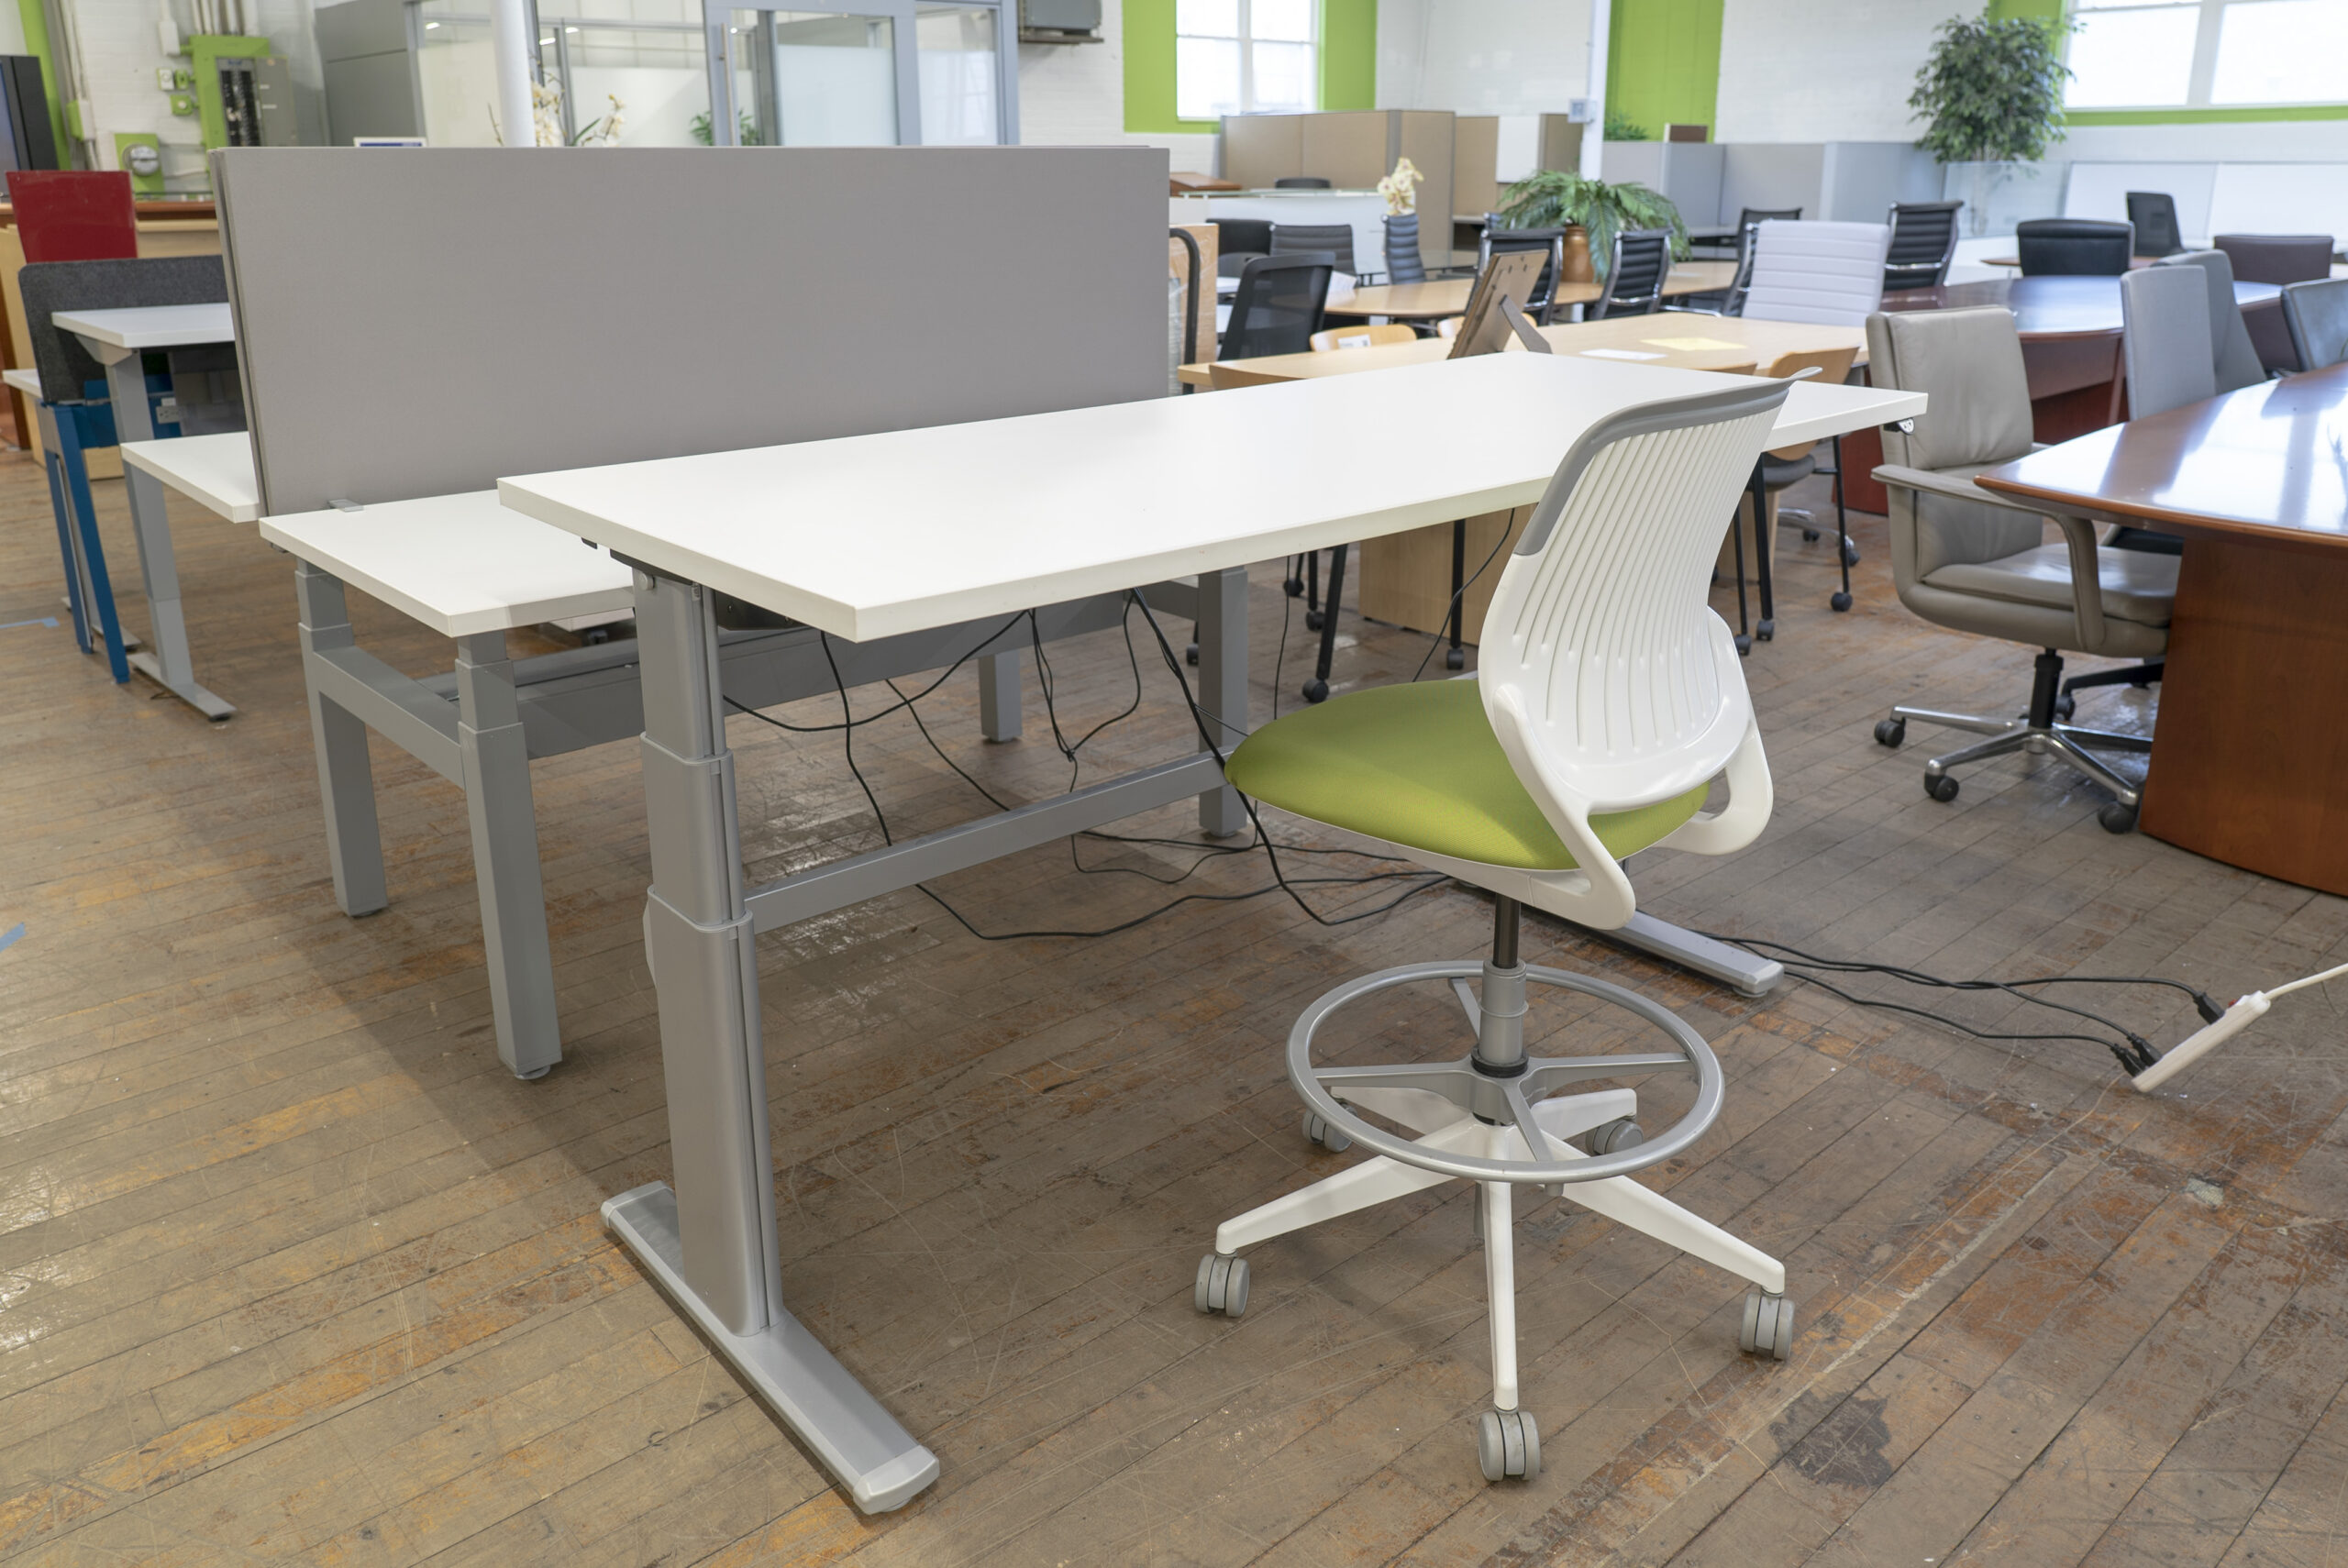 Steelcase Series 5 Height Adjustable Sit-to-Stand Desk